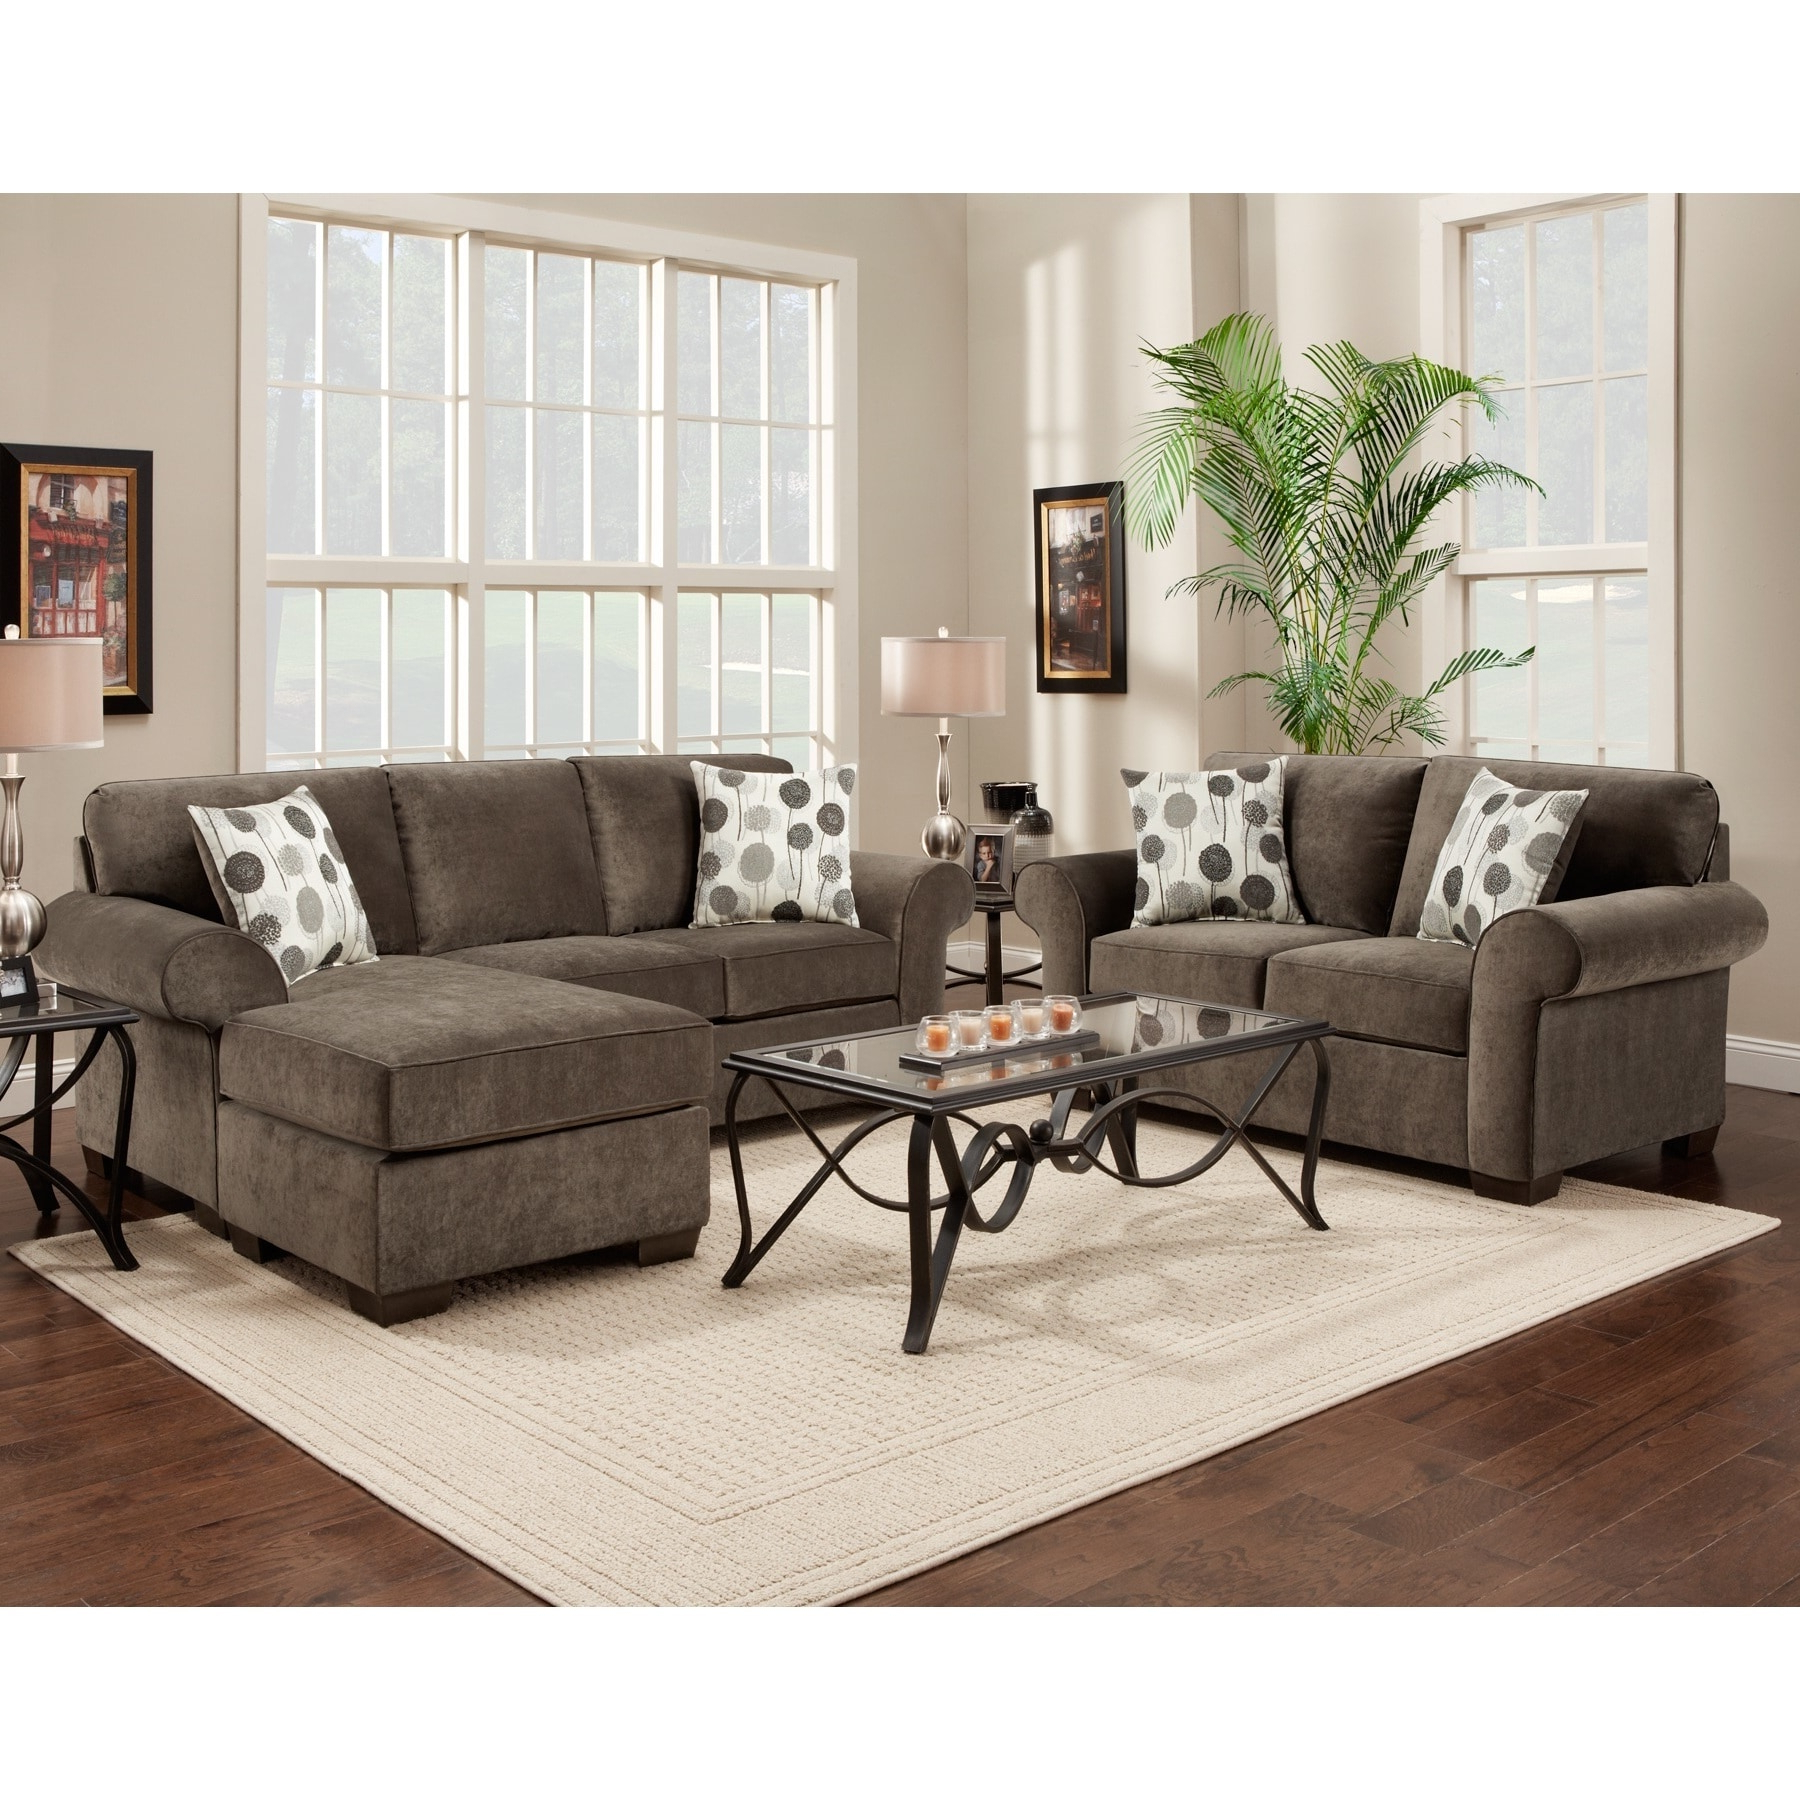 Widely Used Sectional Loveseat – Tidex With Turdur 2 Piece Sectionals With Raf Loveseat (View 18 of 20)